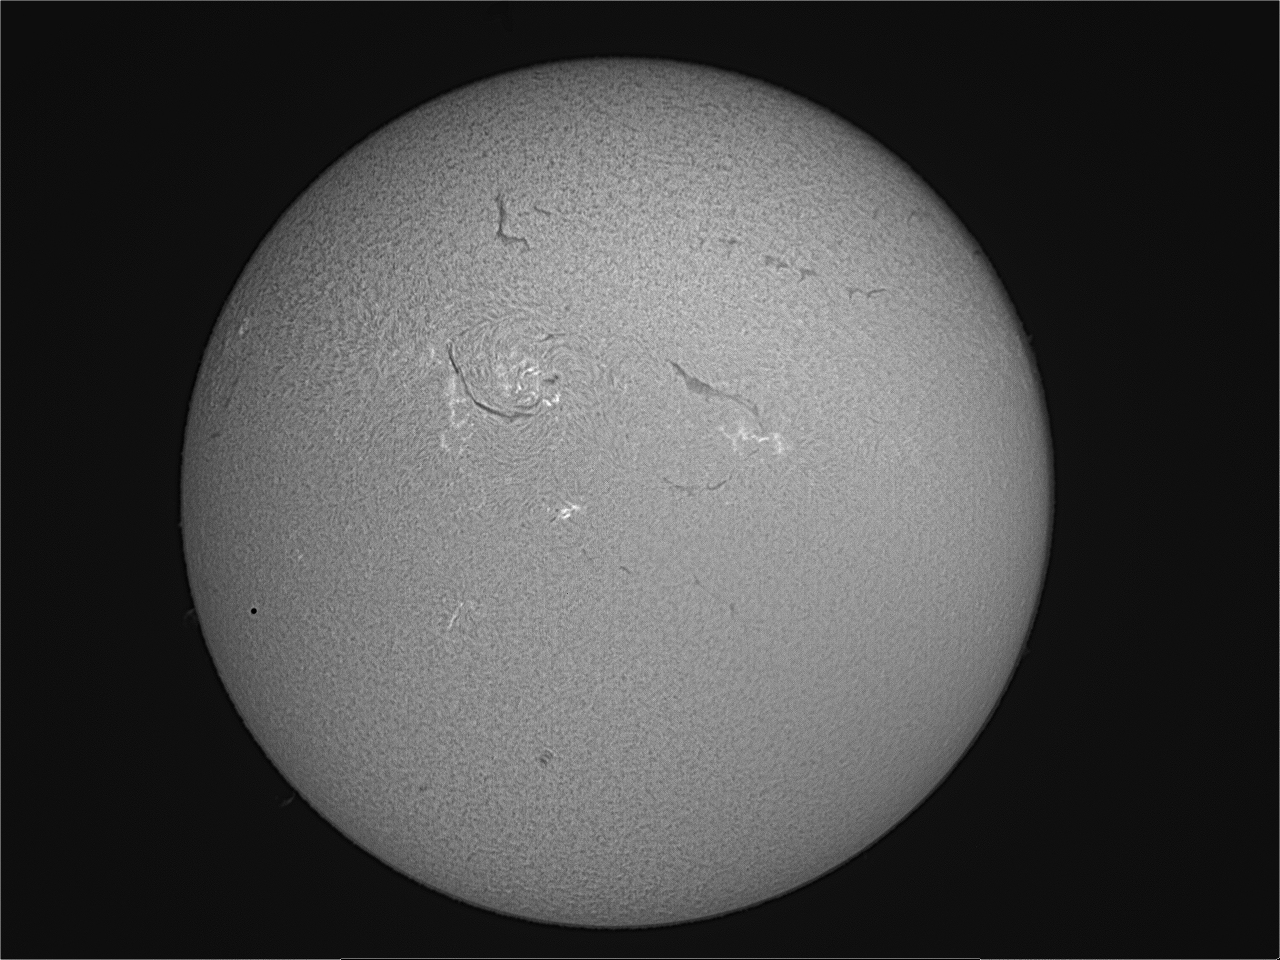 Transit of Mercury 9th May 2016 11:34 UT